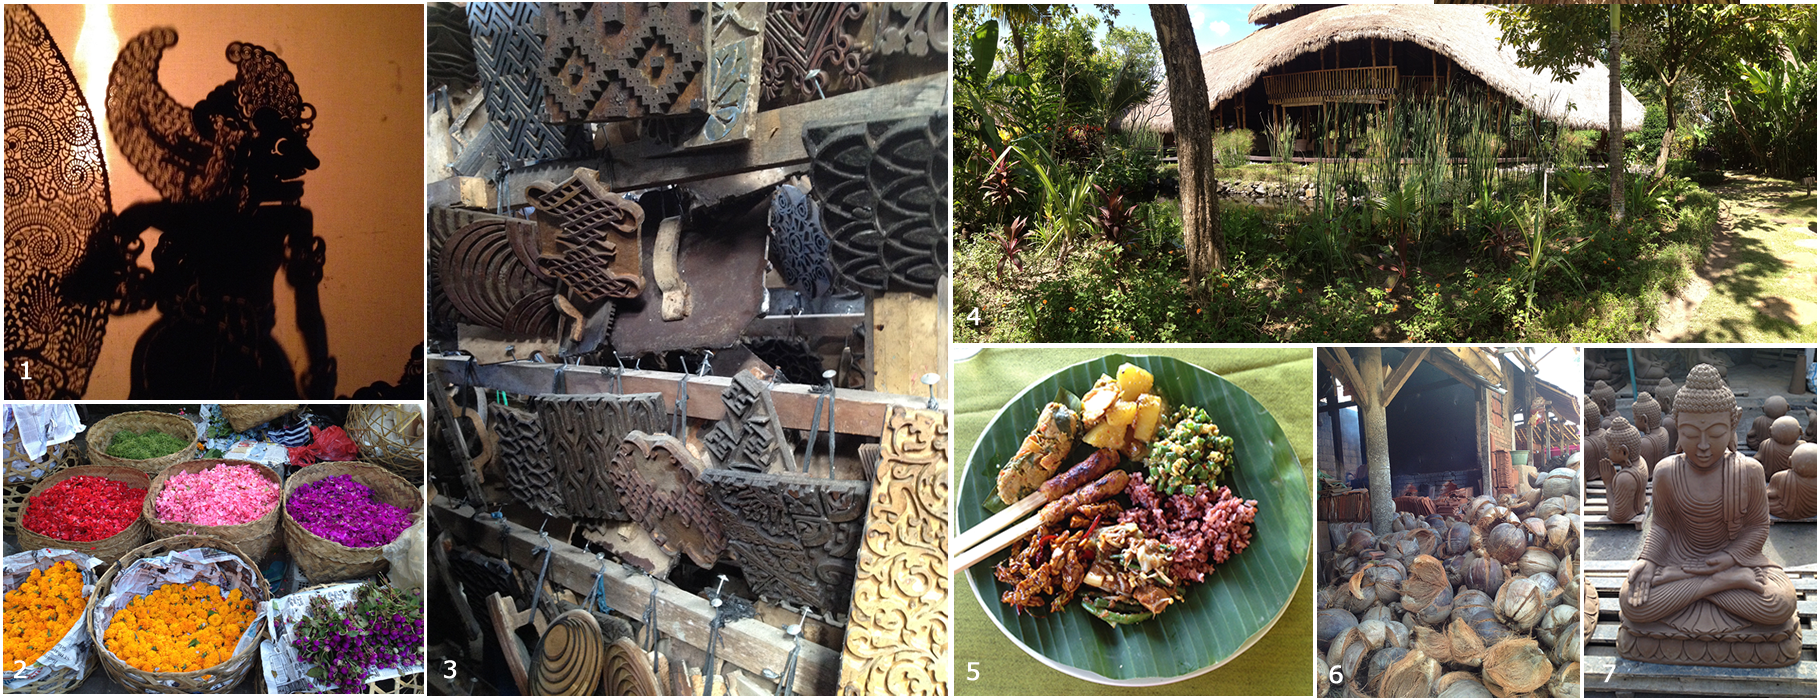 1. Shadow puppet evening preformance  2. Flower petals as offering materials at the Ubud Market  3. Batik Stamps at a production village 4. Five Elements restaurant and spa where we had lunch  5. Meal we made in cooking class  6. Coconut husks used as fuel for kiln firing roof tiles  7. Buddha drying in the sun at statuary production village.